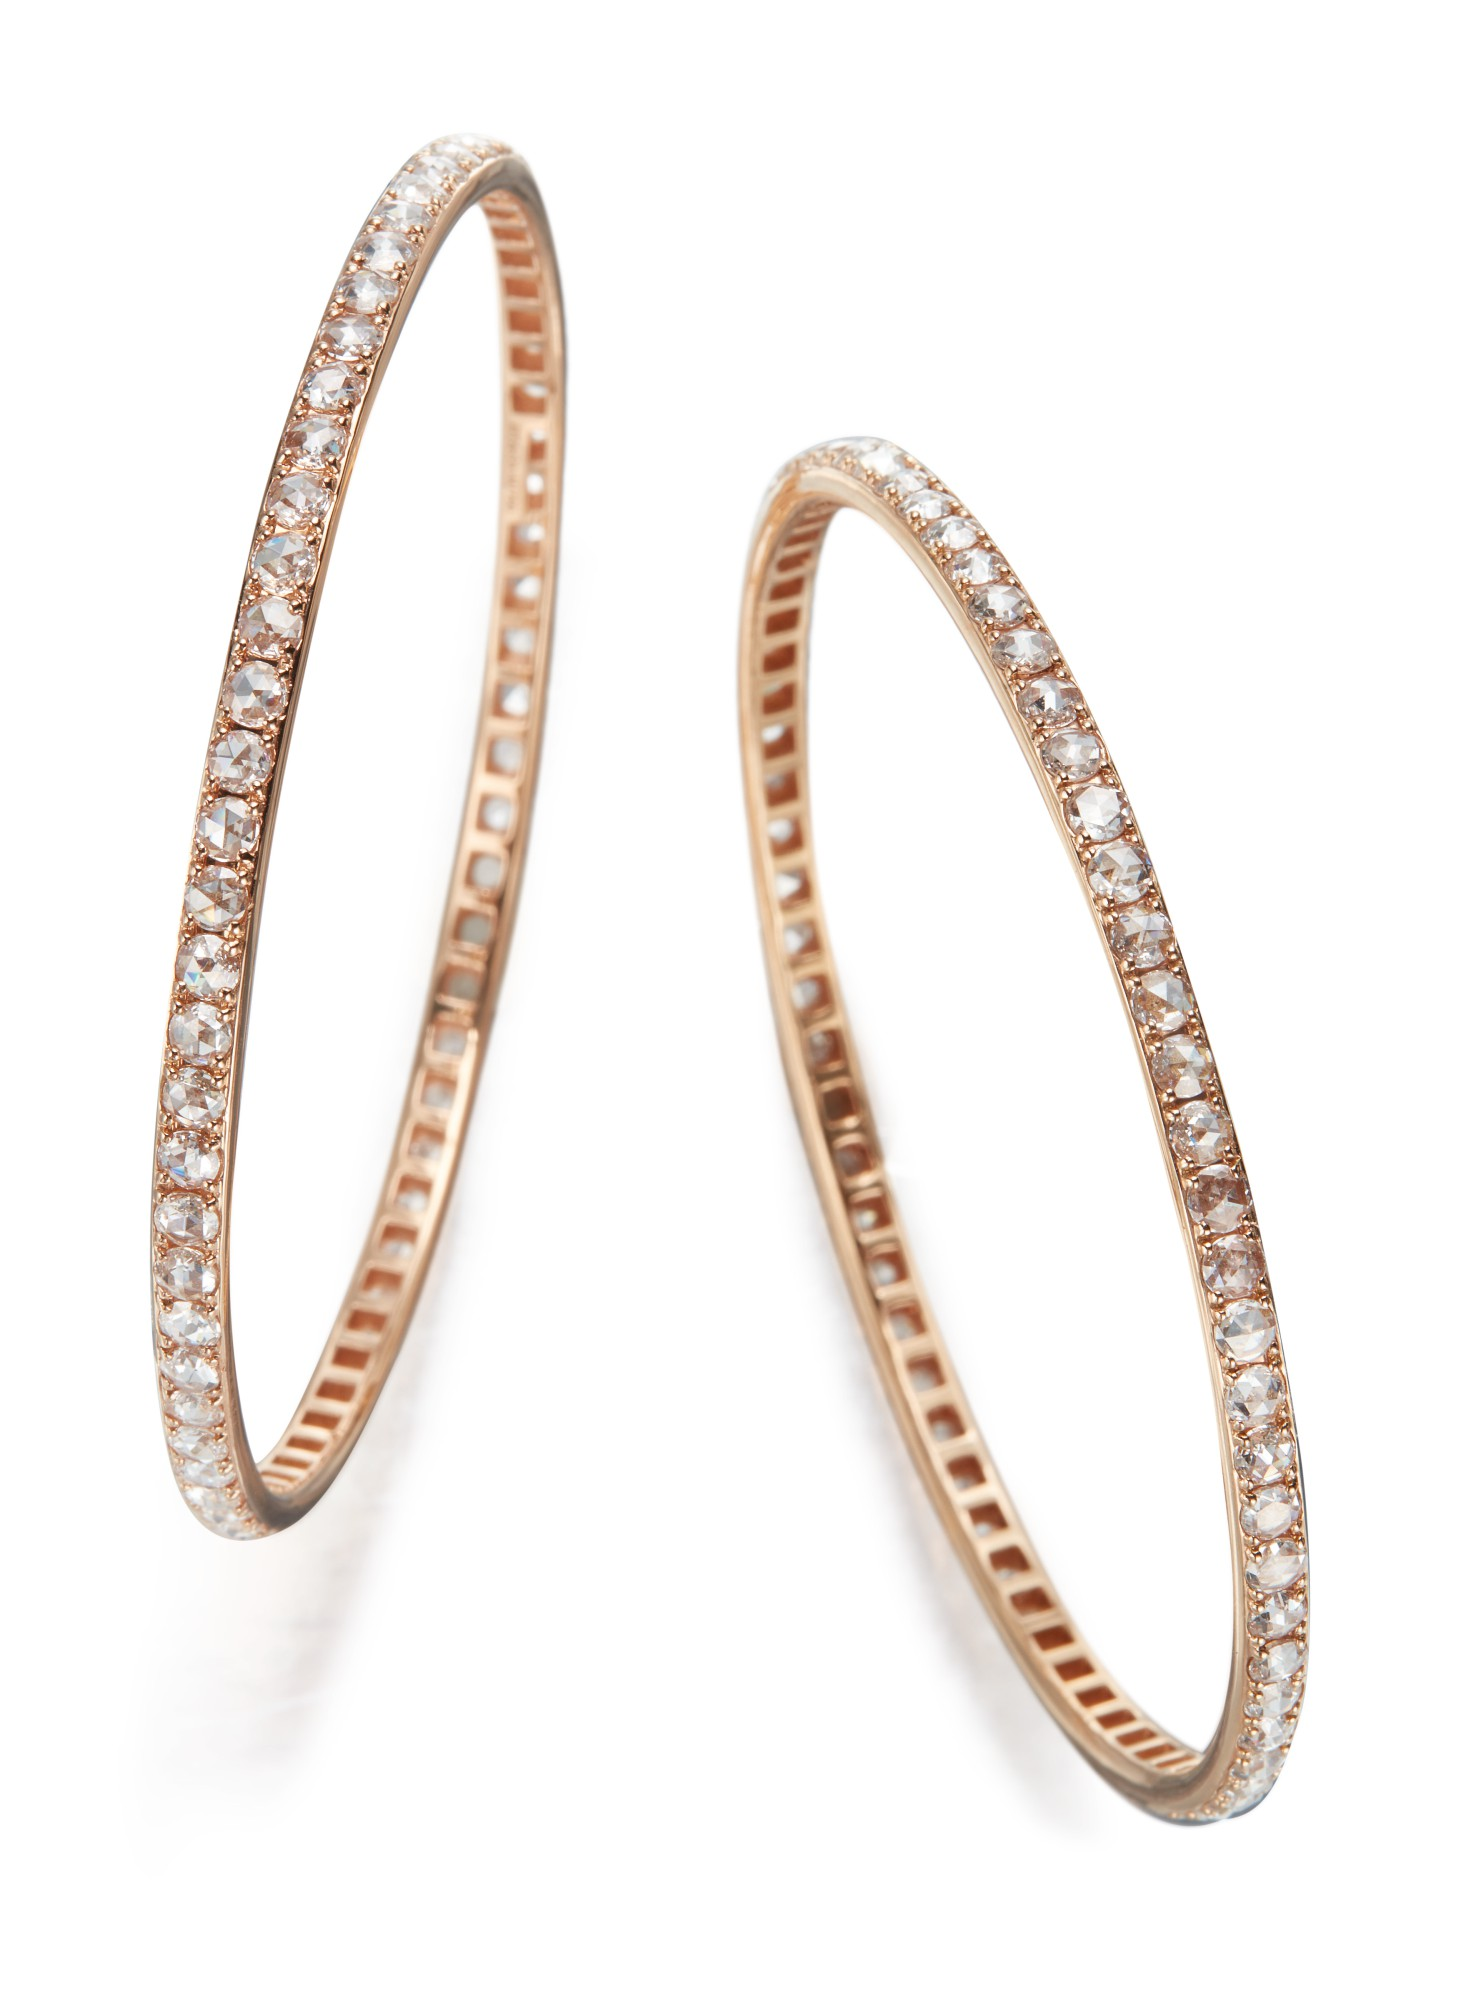 PAIR OF DIAMOND BANGLE-BRACELETS, TIFFANY & CO.